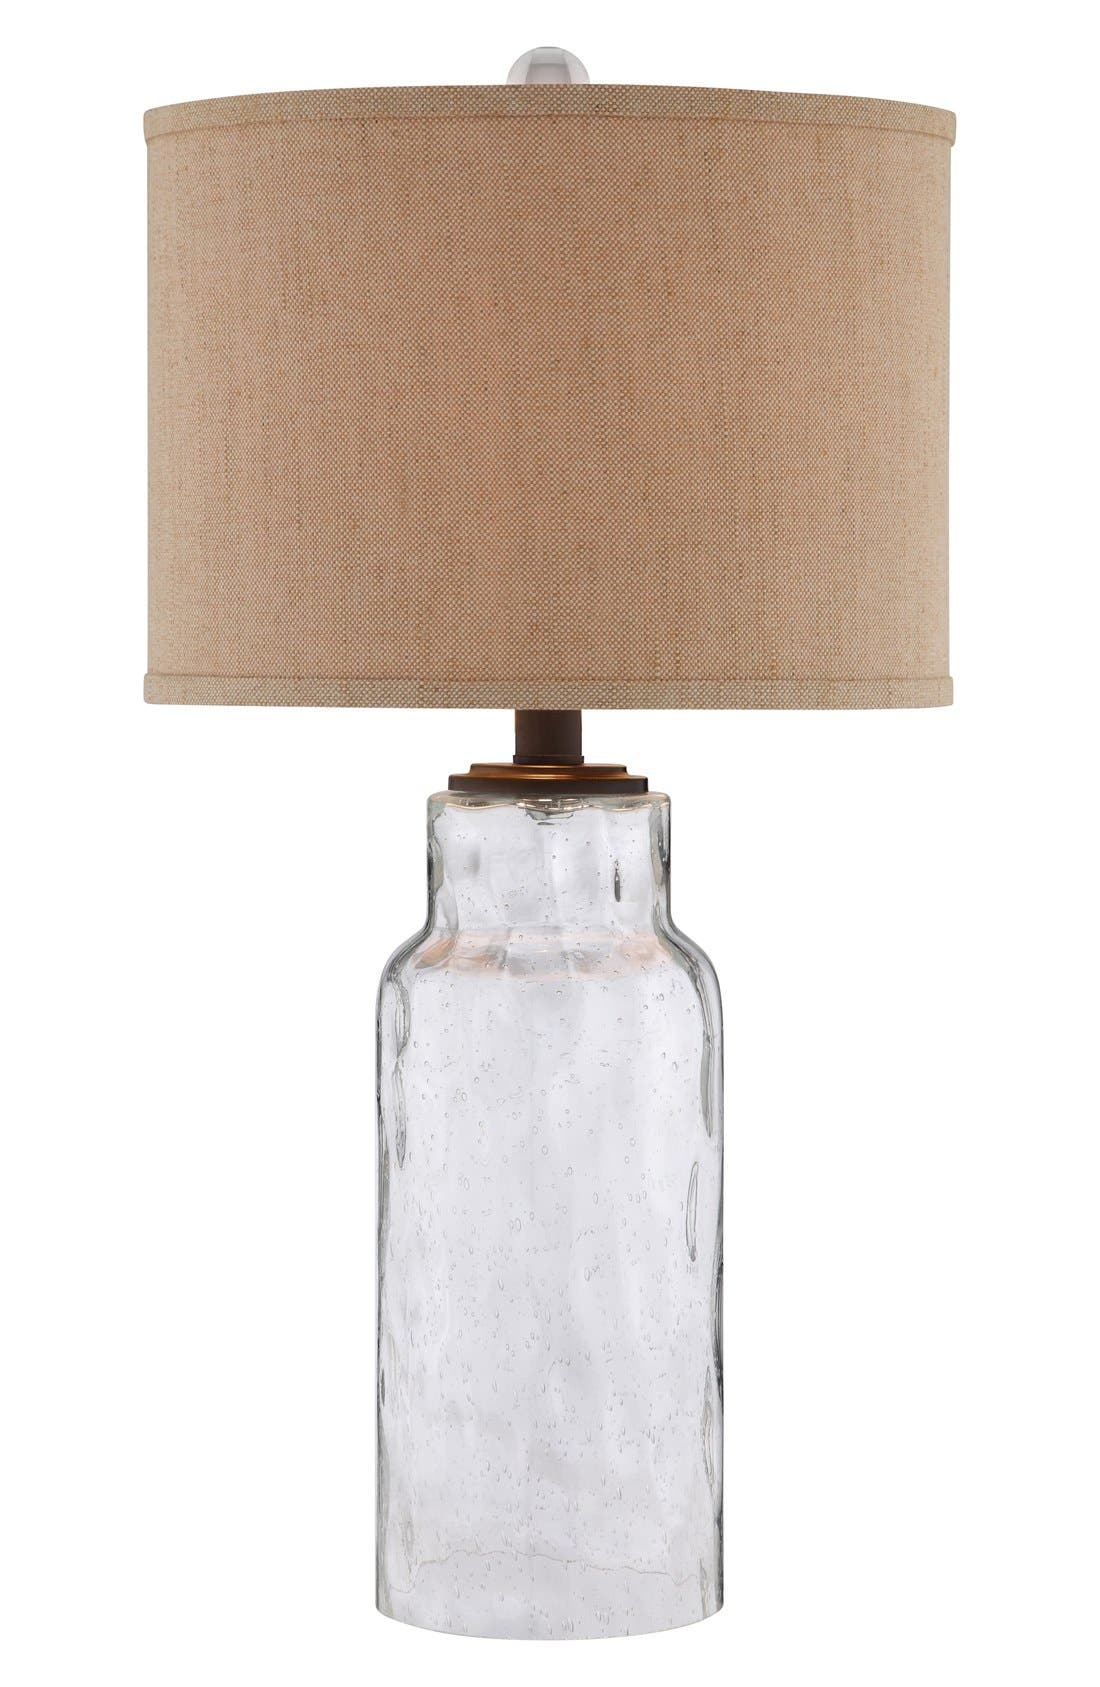 Clear Dimpled Glass Table Lamp,                         Main,                         color, Clear Glass/ Dark Bronze